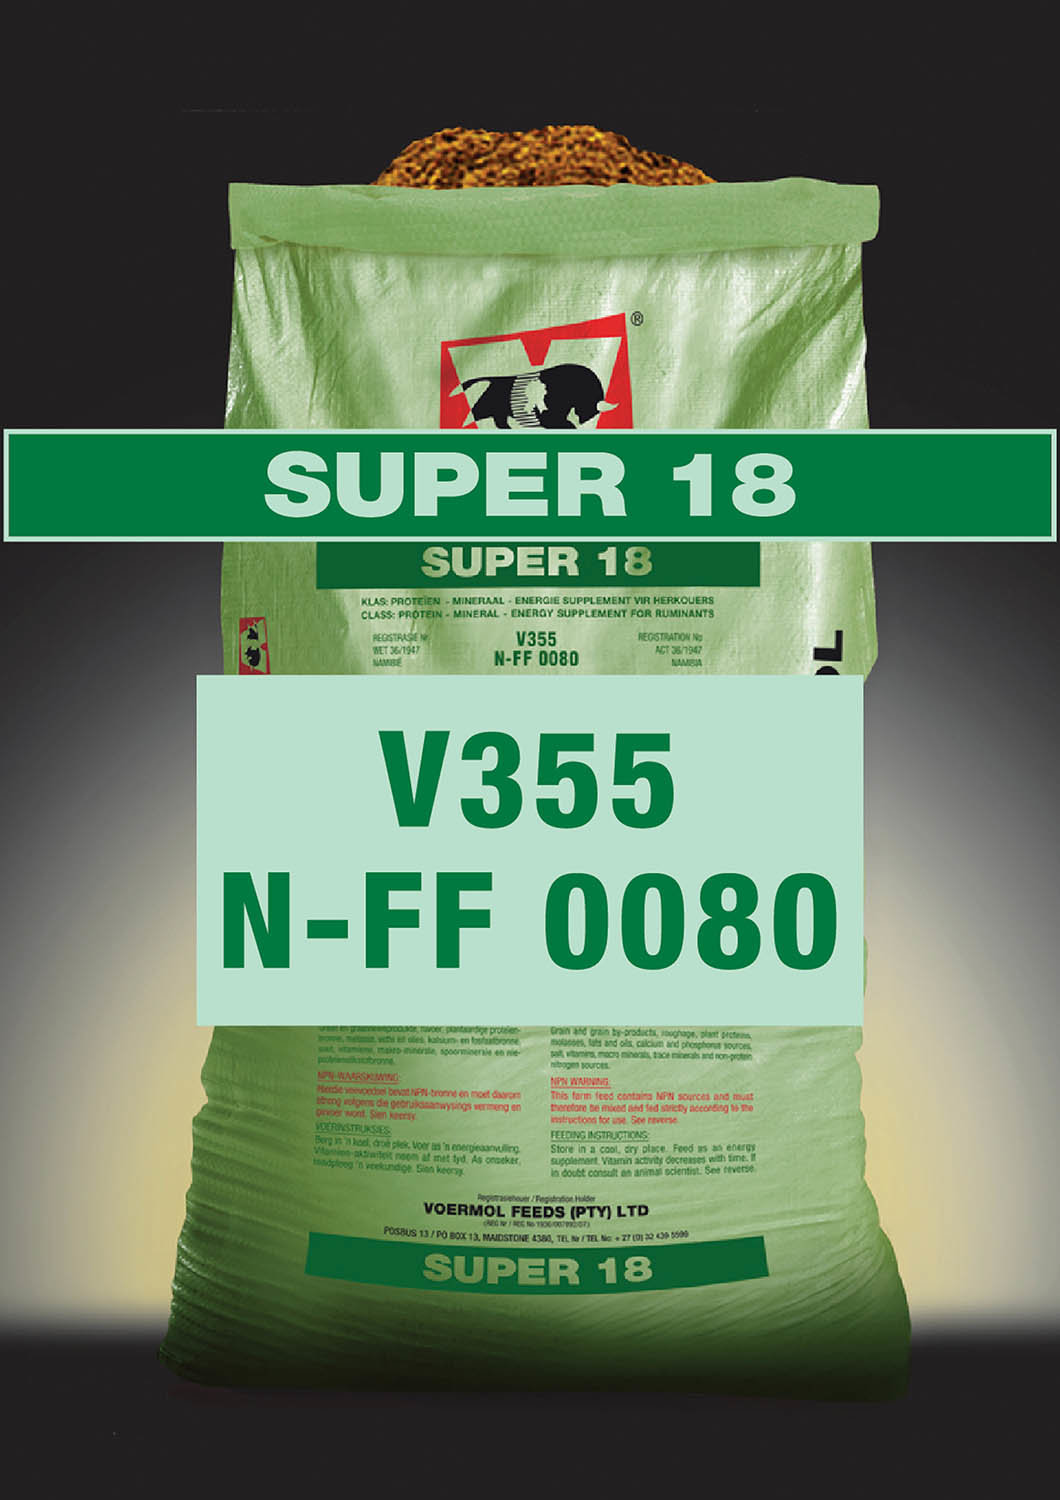 products-Voermol-Super-18